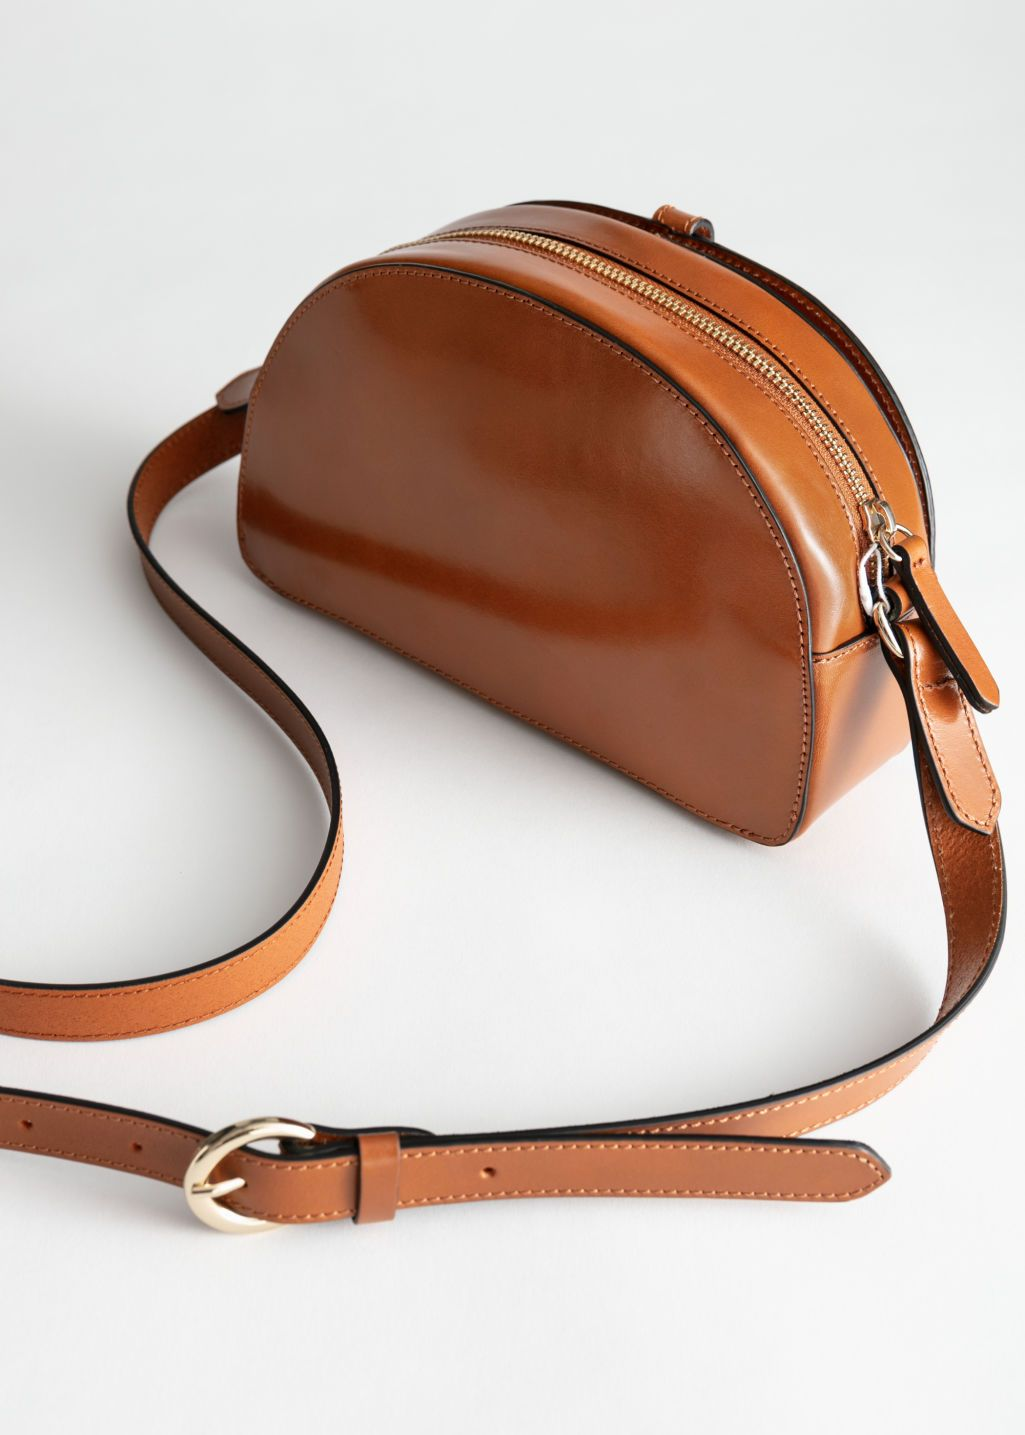 Photo of Leather Half Moon Crossbody Bag